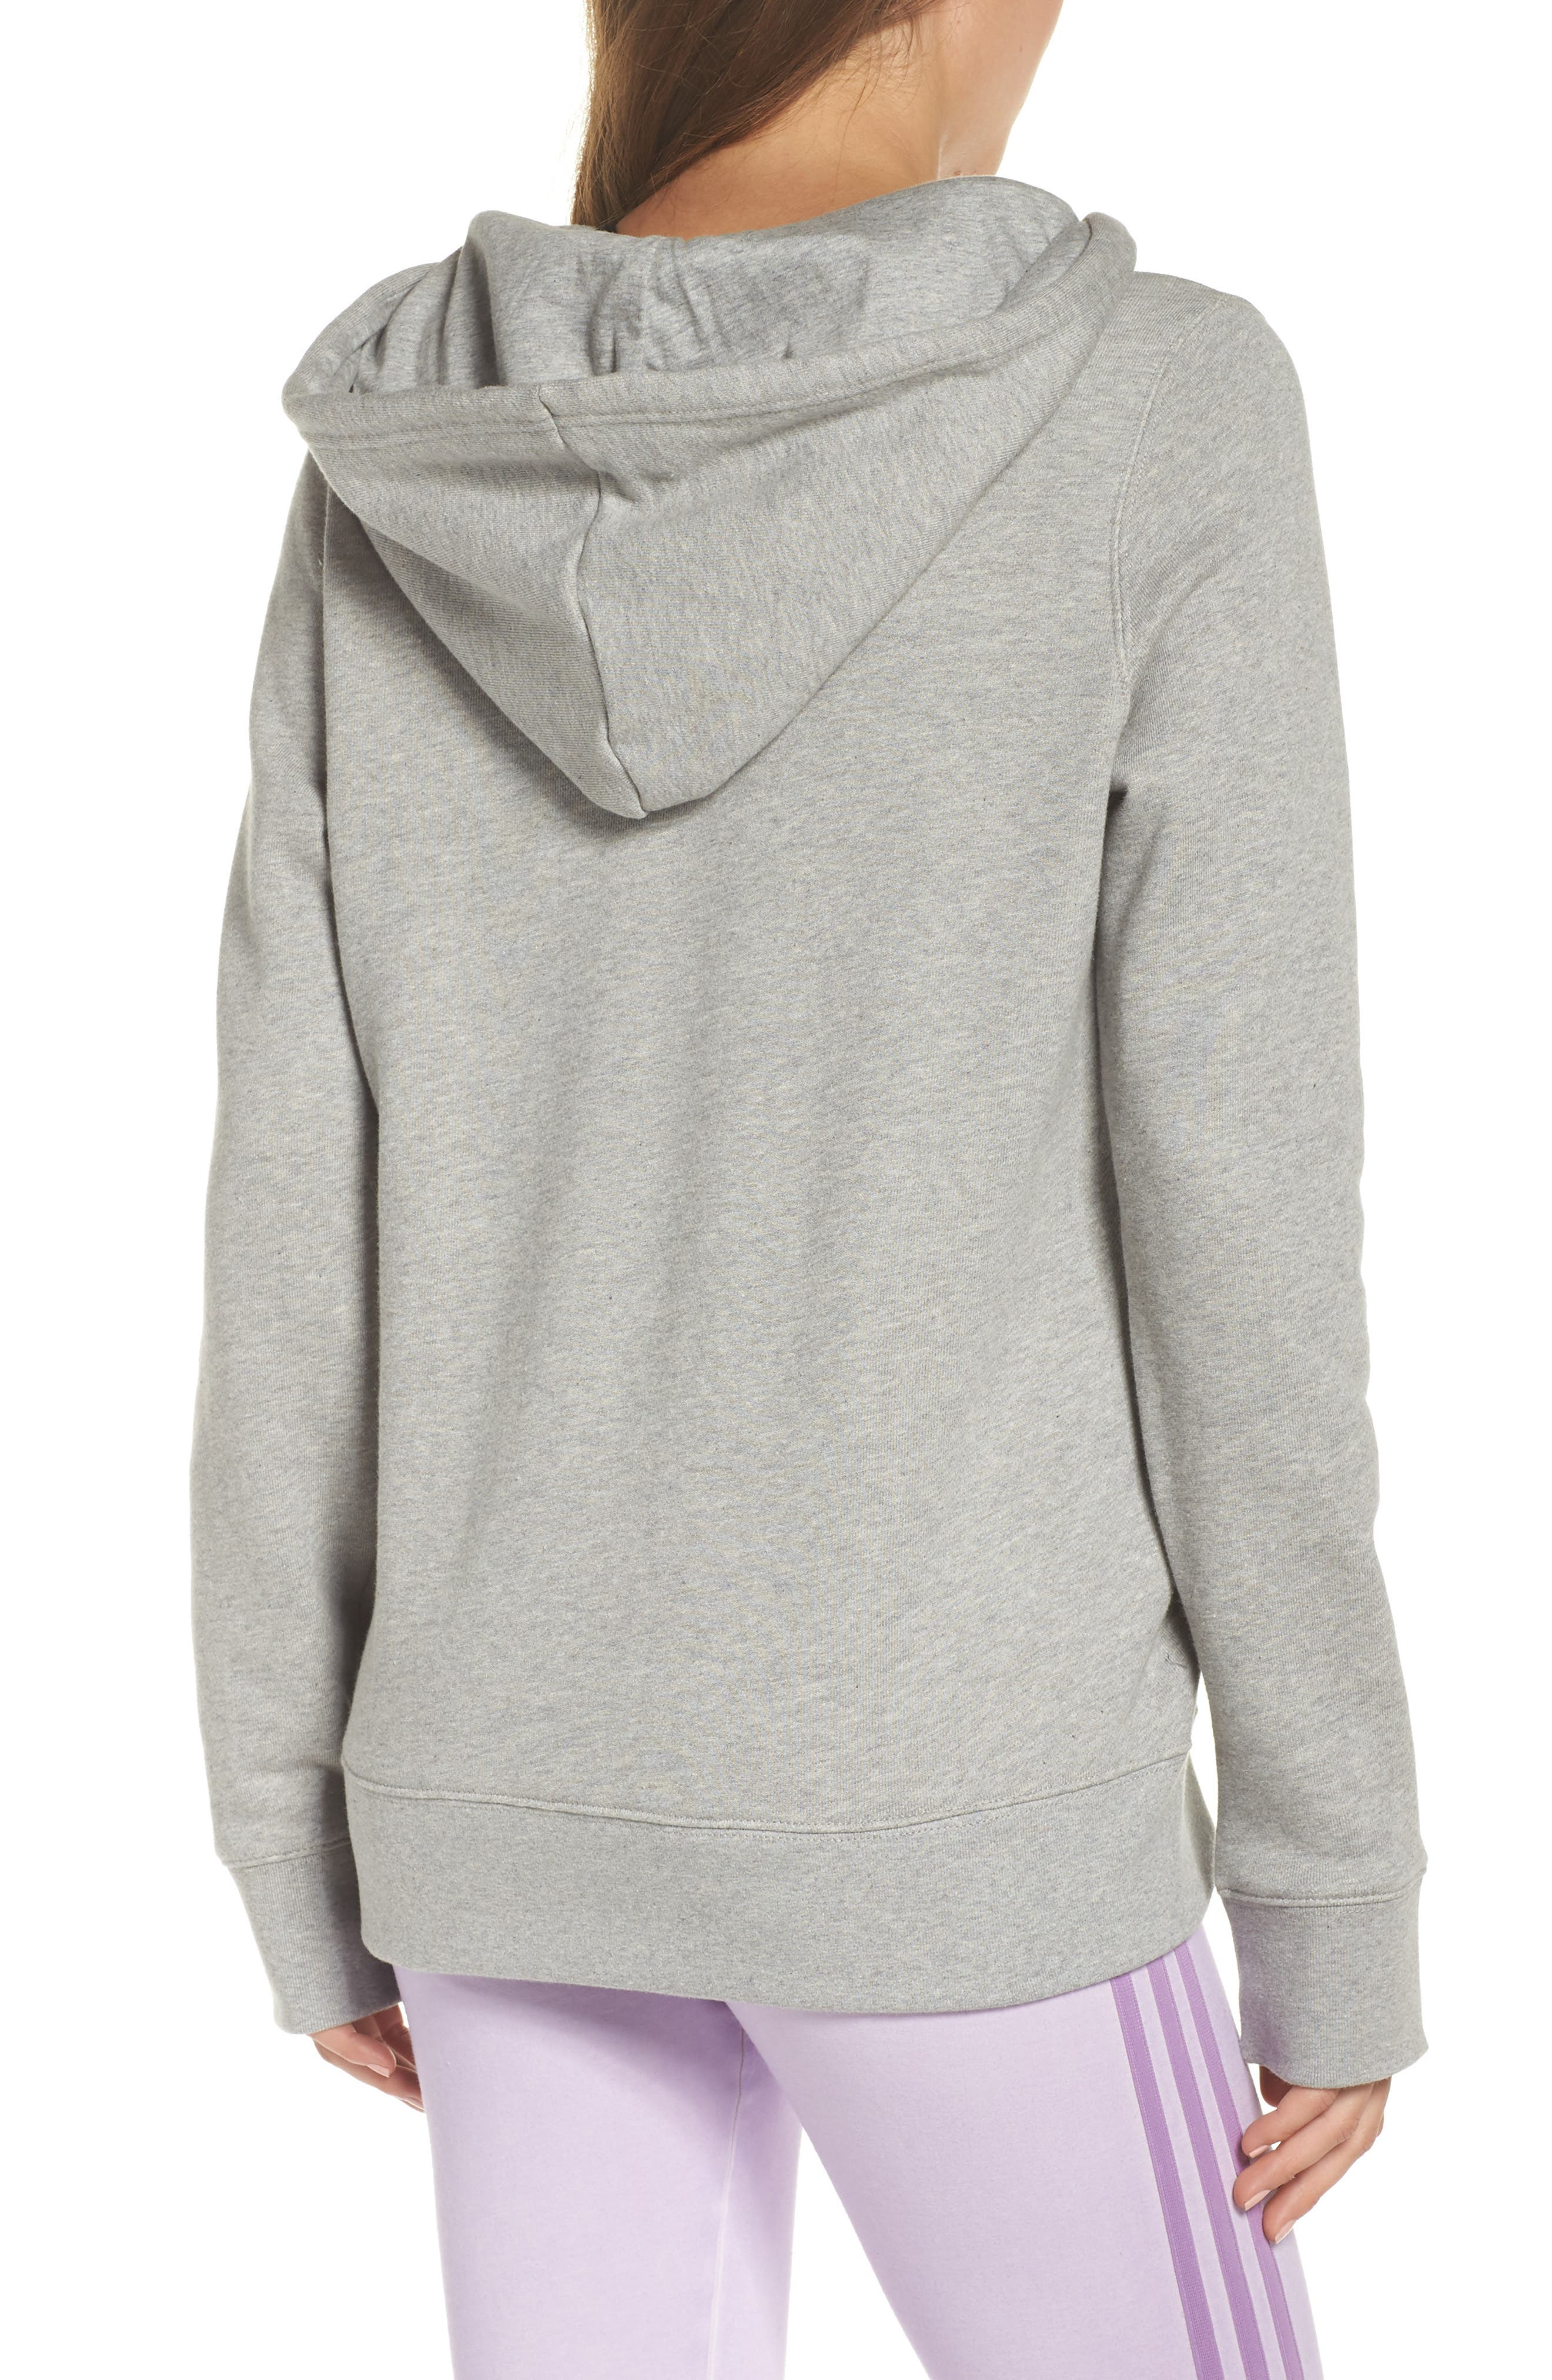 ADIDAS ORIGINALS, Trefoil Hoodie, Alternate thumbnail 2, color, MEDIUM GREY HEATHER